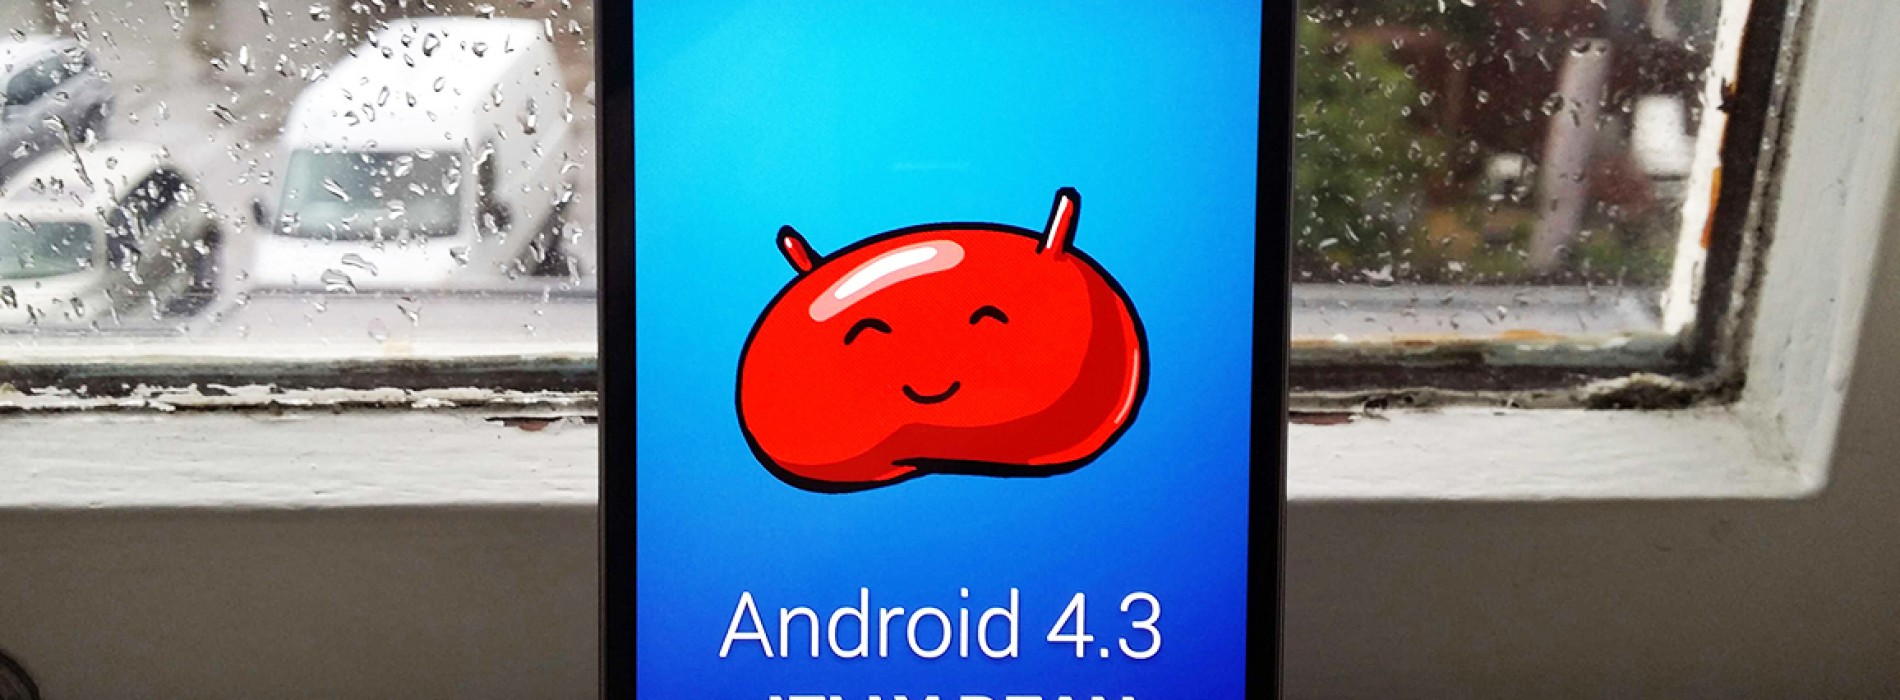 Android 4.3 Jelly Bean arrives soon for Samsung Galaxy S4 but you can download it now